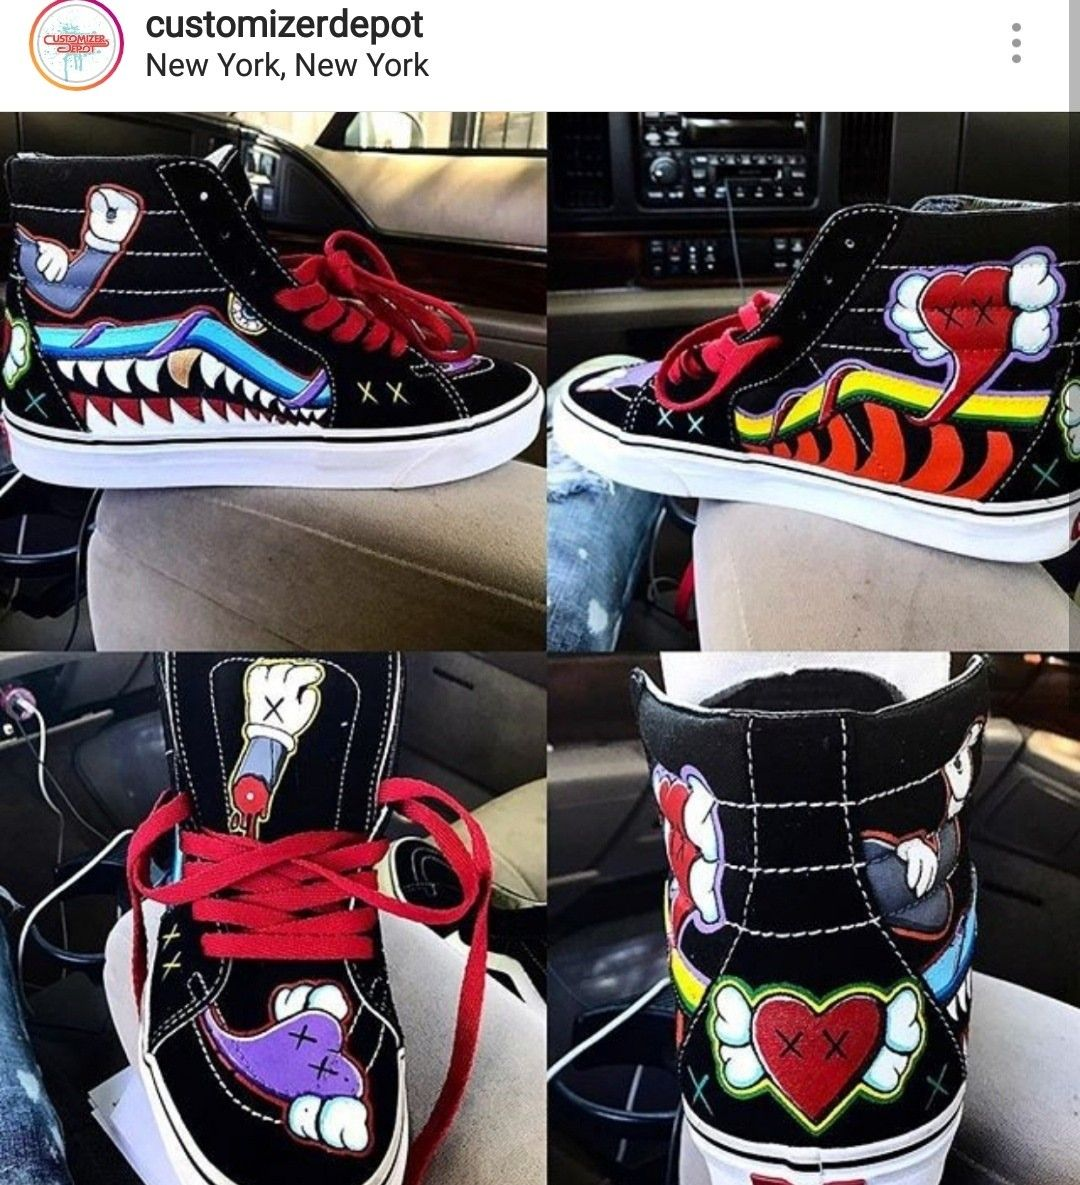 Would you like to see a KAWS x Vans collaboration  Done by  6061beastmoe510   kawsxvans  kaws  kawssneakers  customshoes  customizer  customizerdepot ... 54a02e8d5